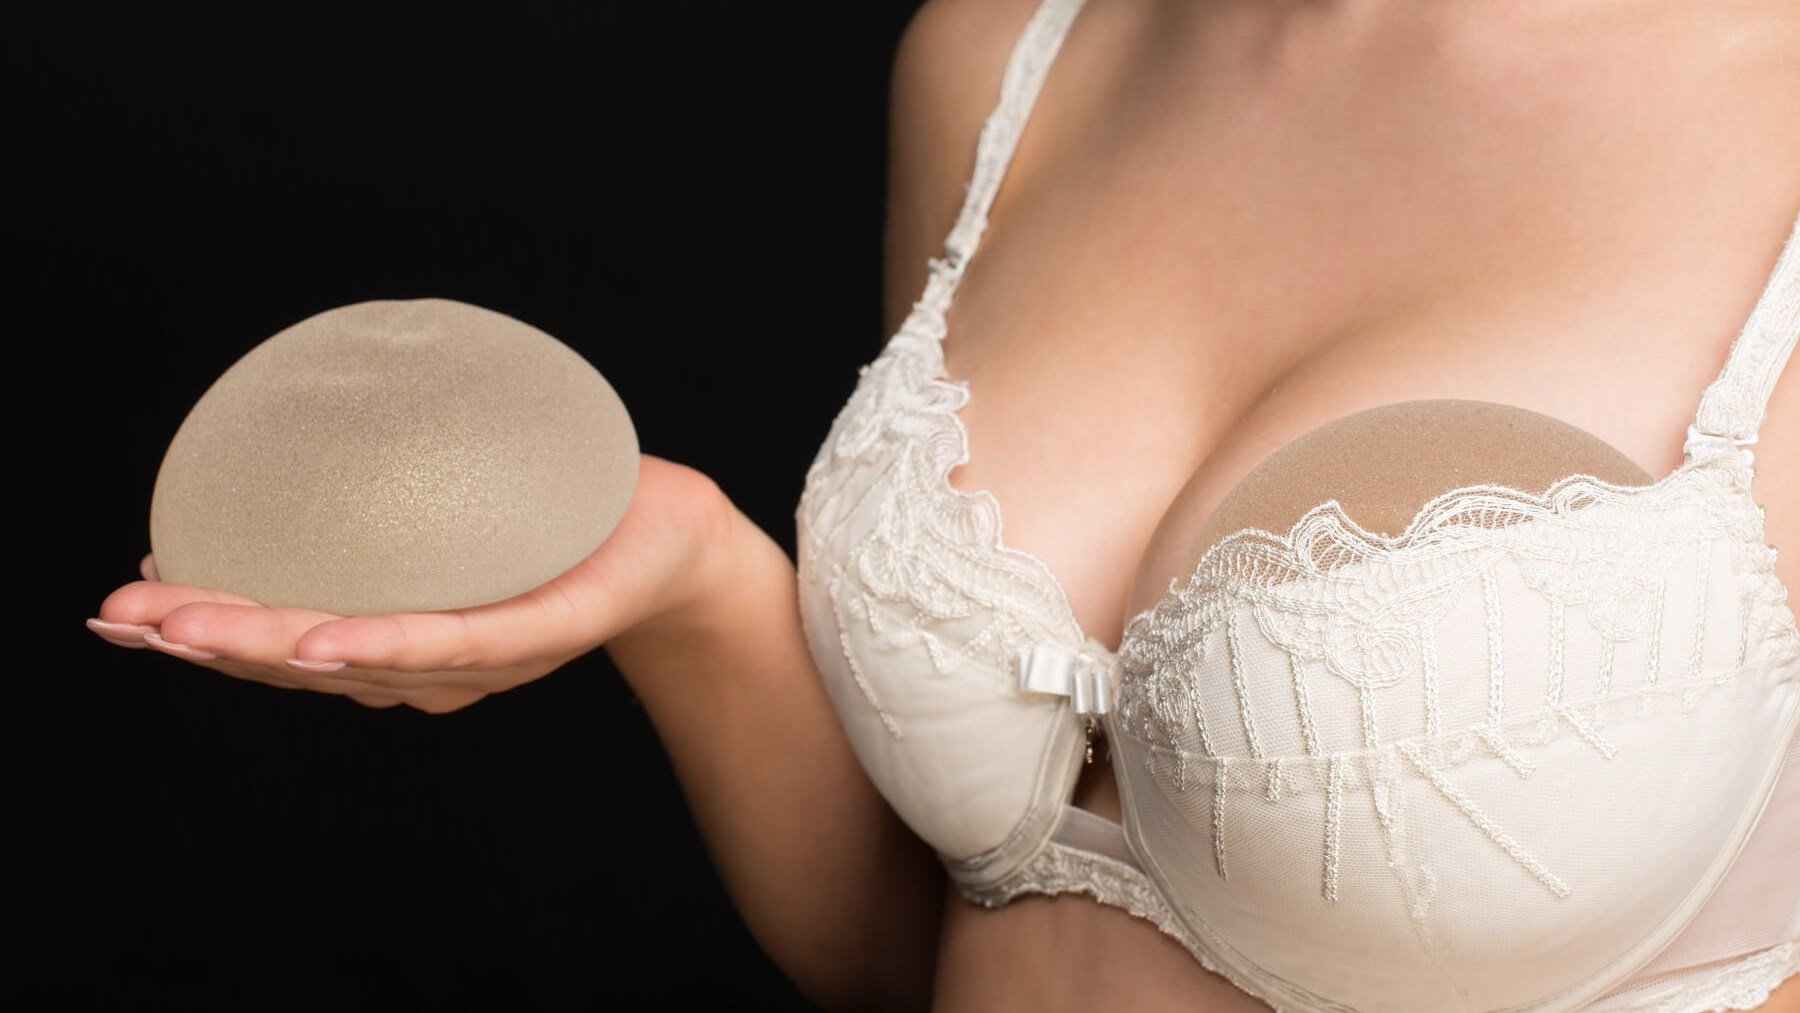 Deciding if the Breast Augmentation Procedure Is Right for You